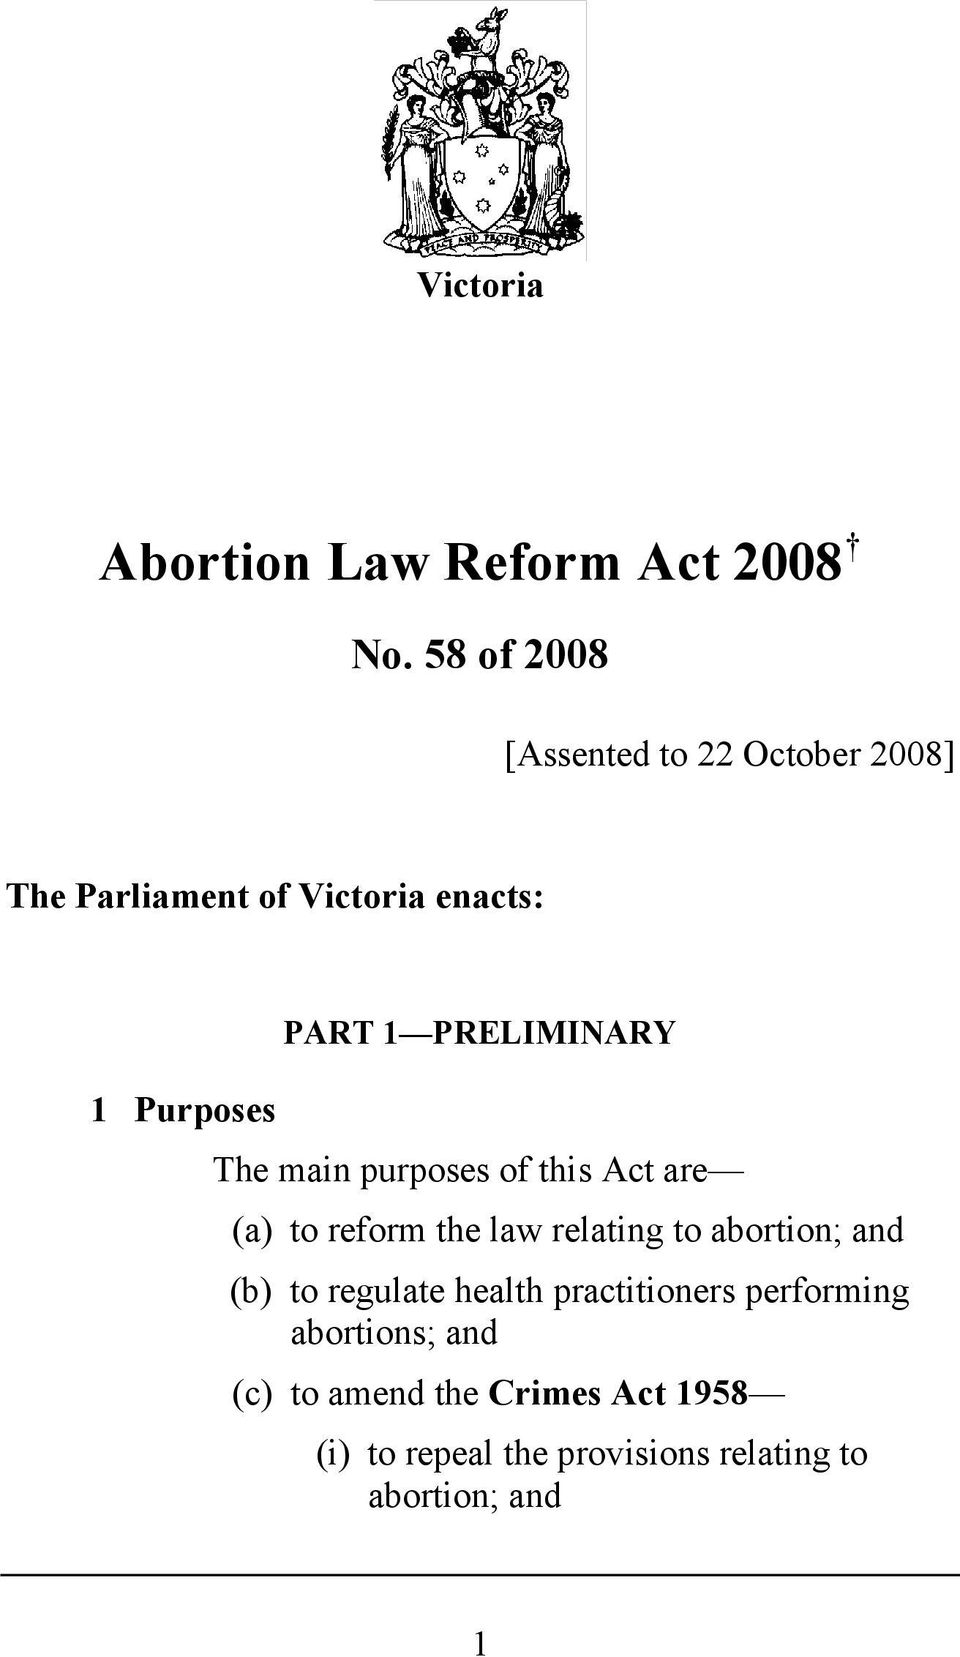 reform the law relating to abortion; and (b) to regulate health practitioners performing